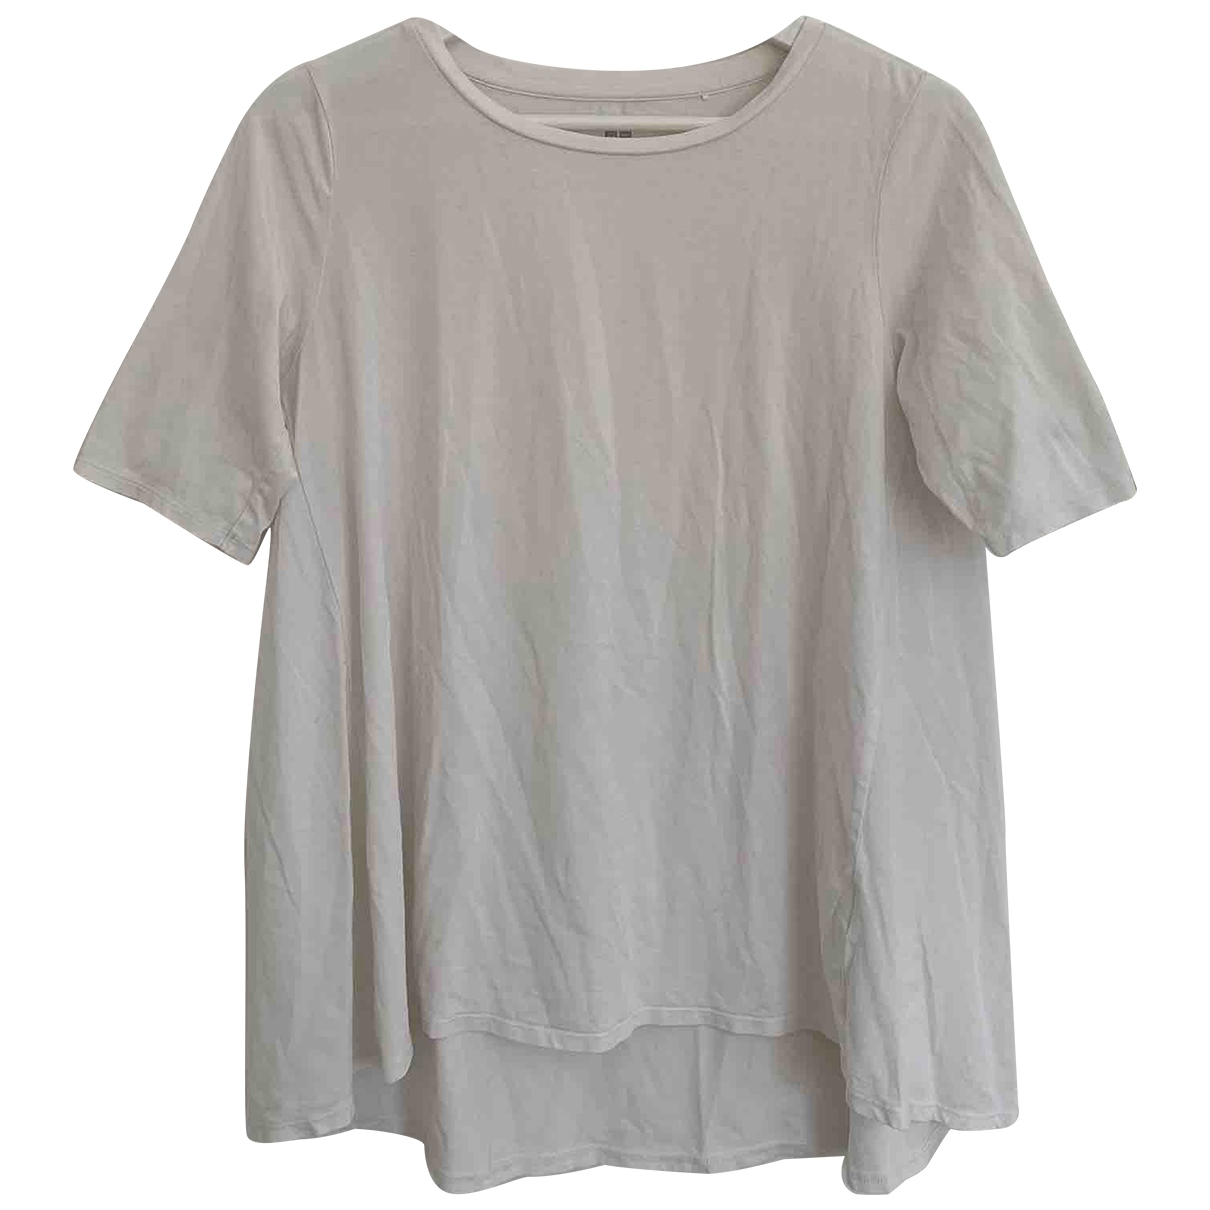 Uniqlo \N White Cotton  top for Women S International